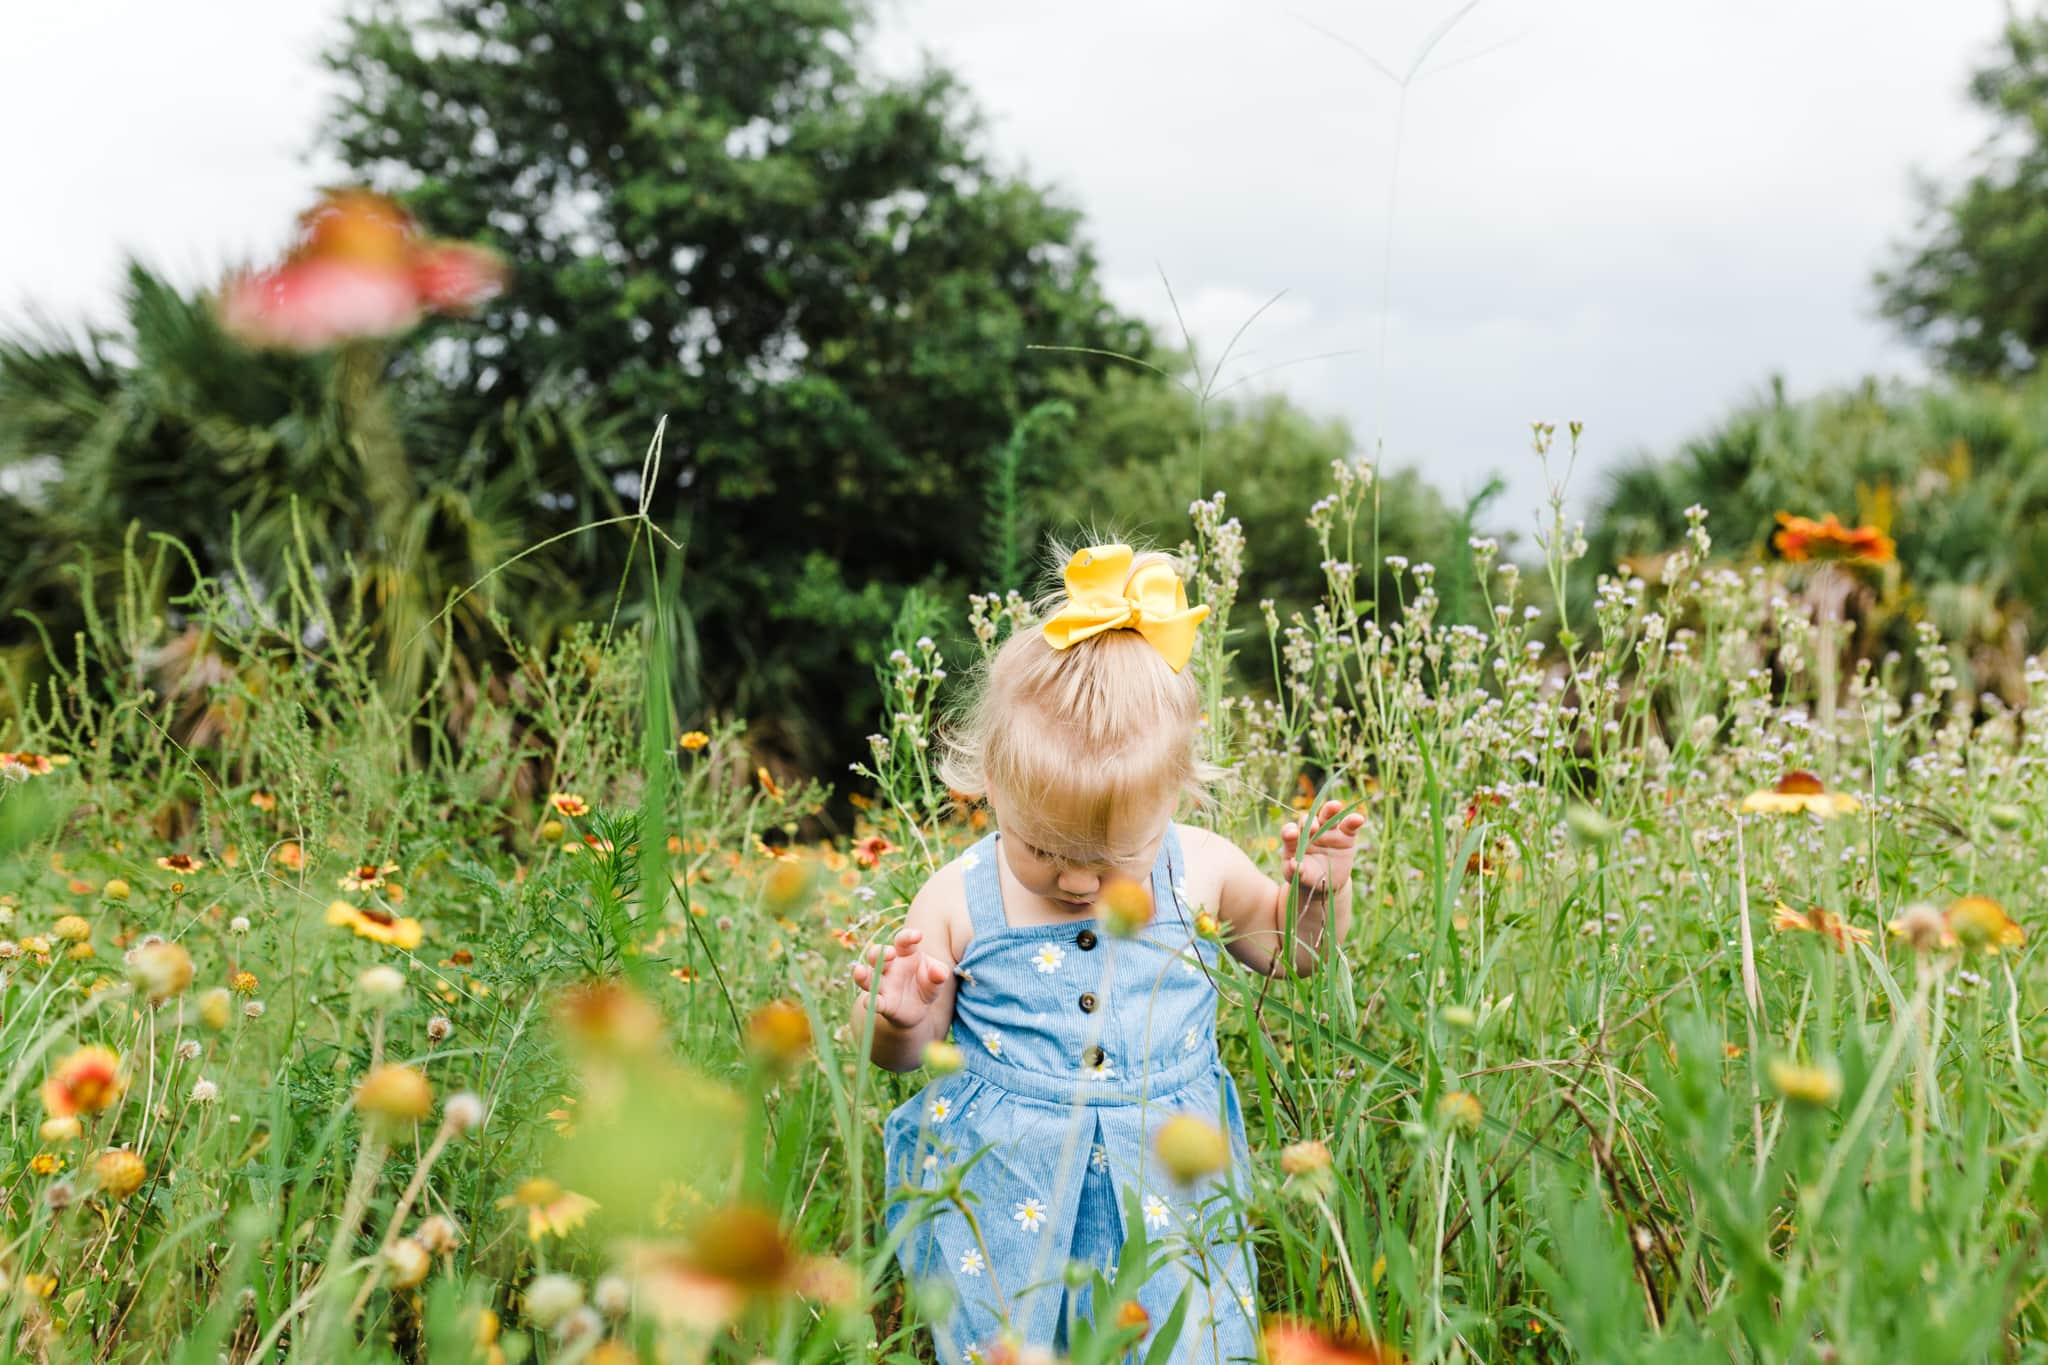 little girl with yellow bow exploring through a field of wildflowers